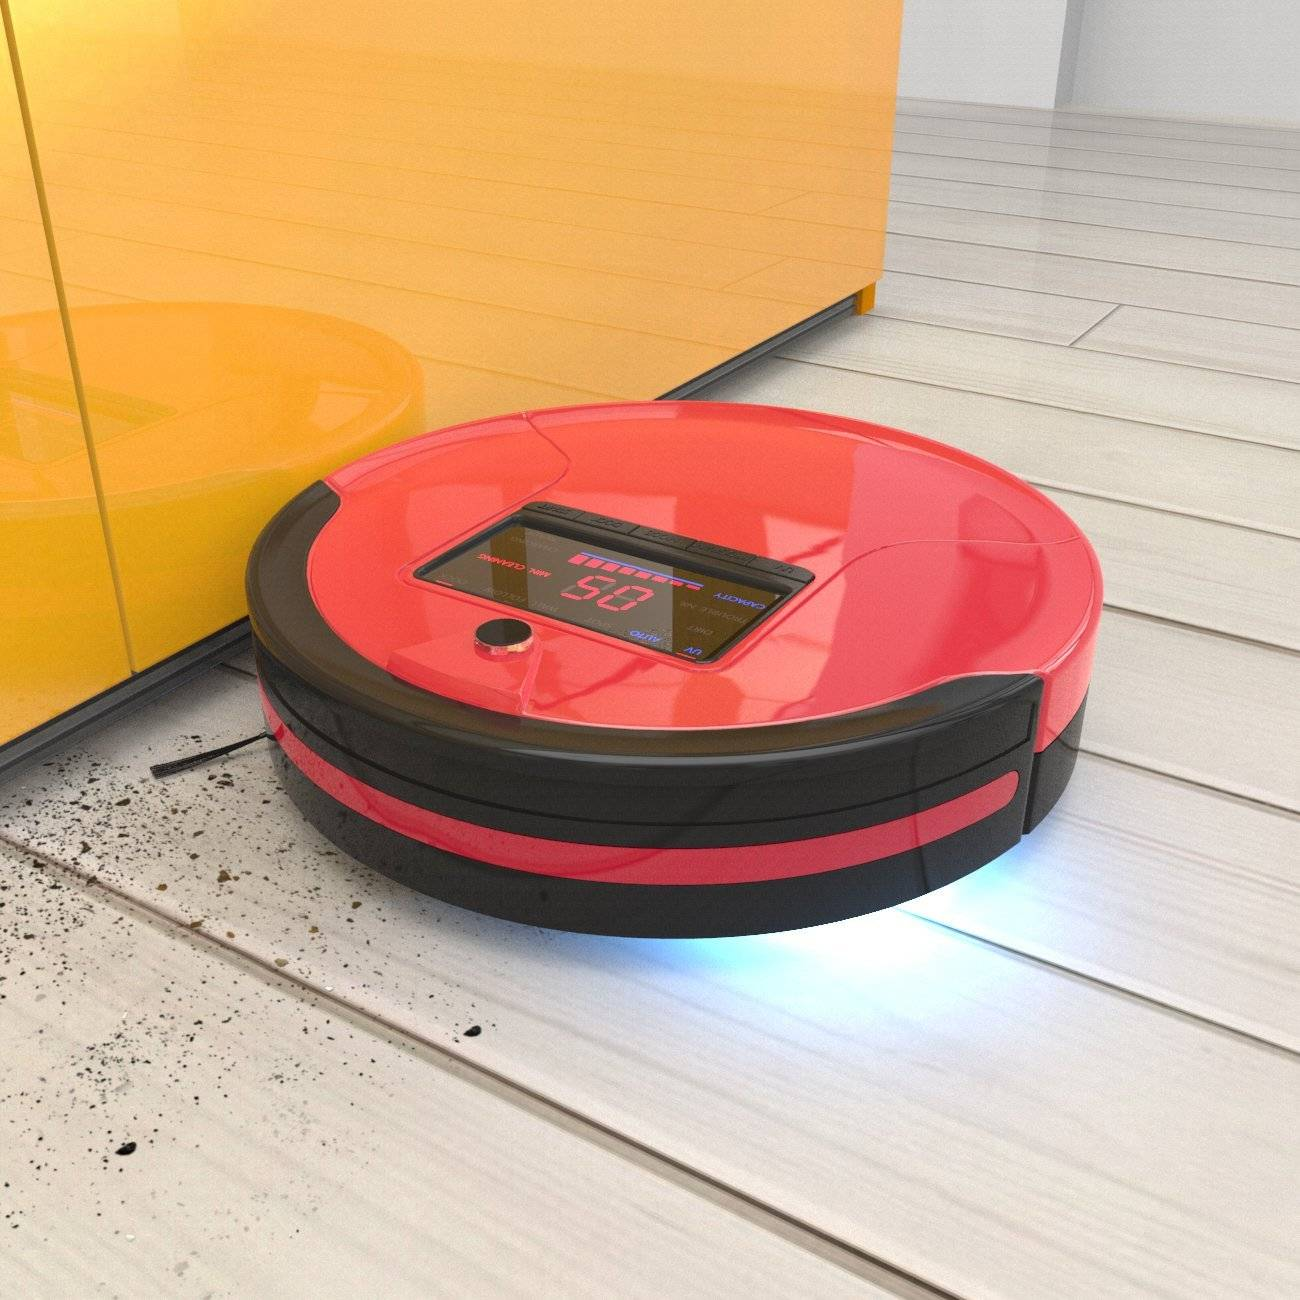 bObsweep Pet Hair Robotic Vacuum Giveaway 2